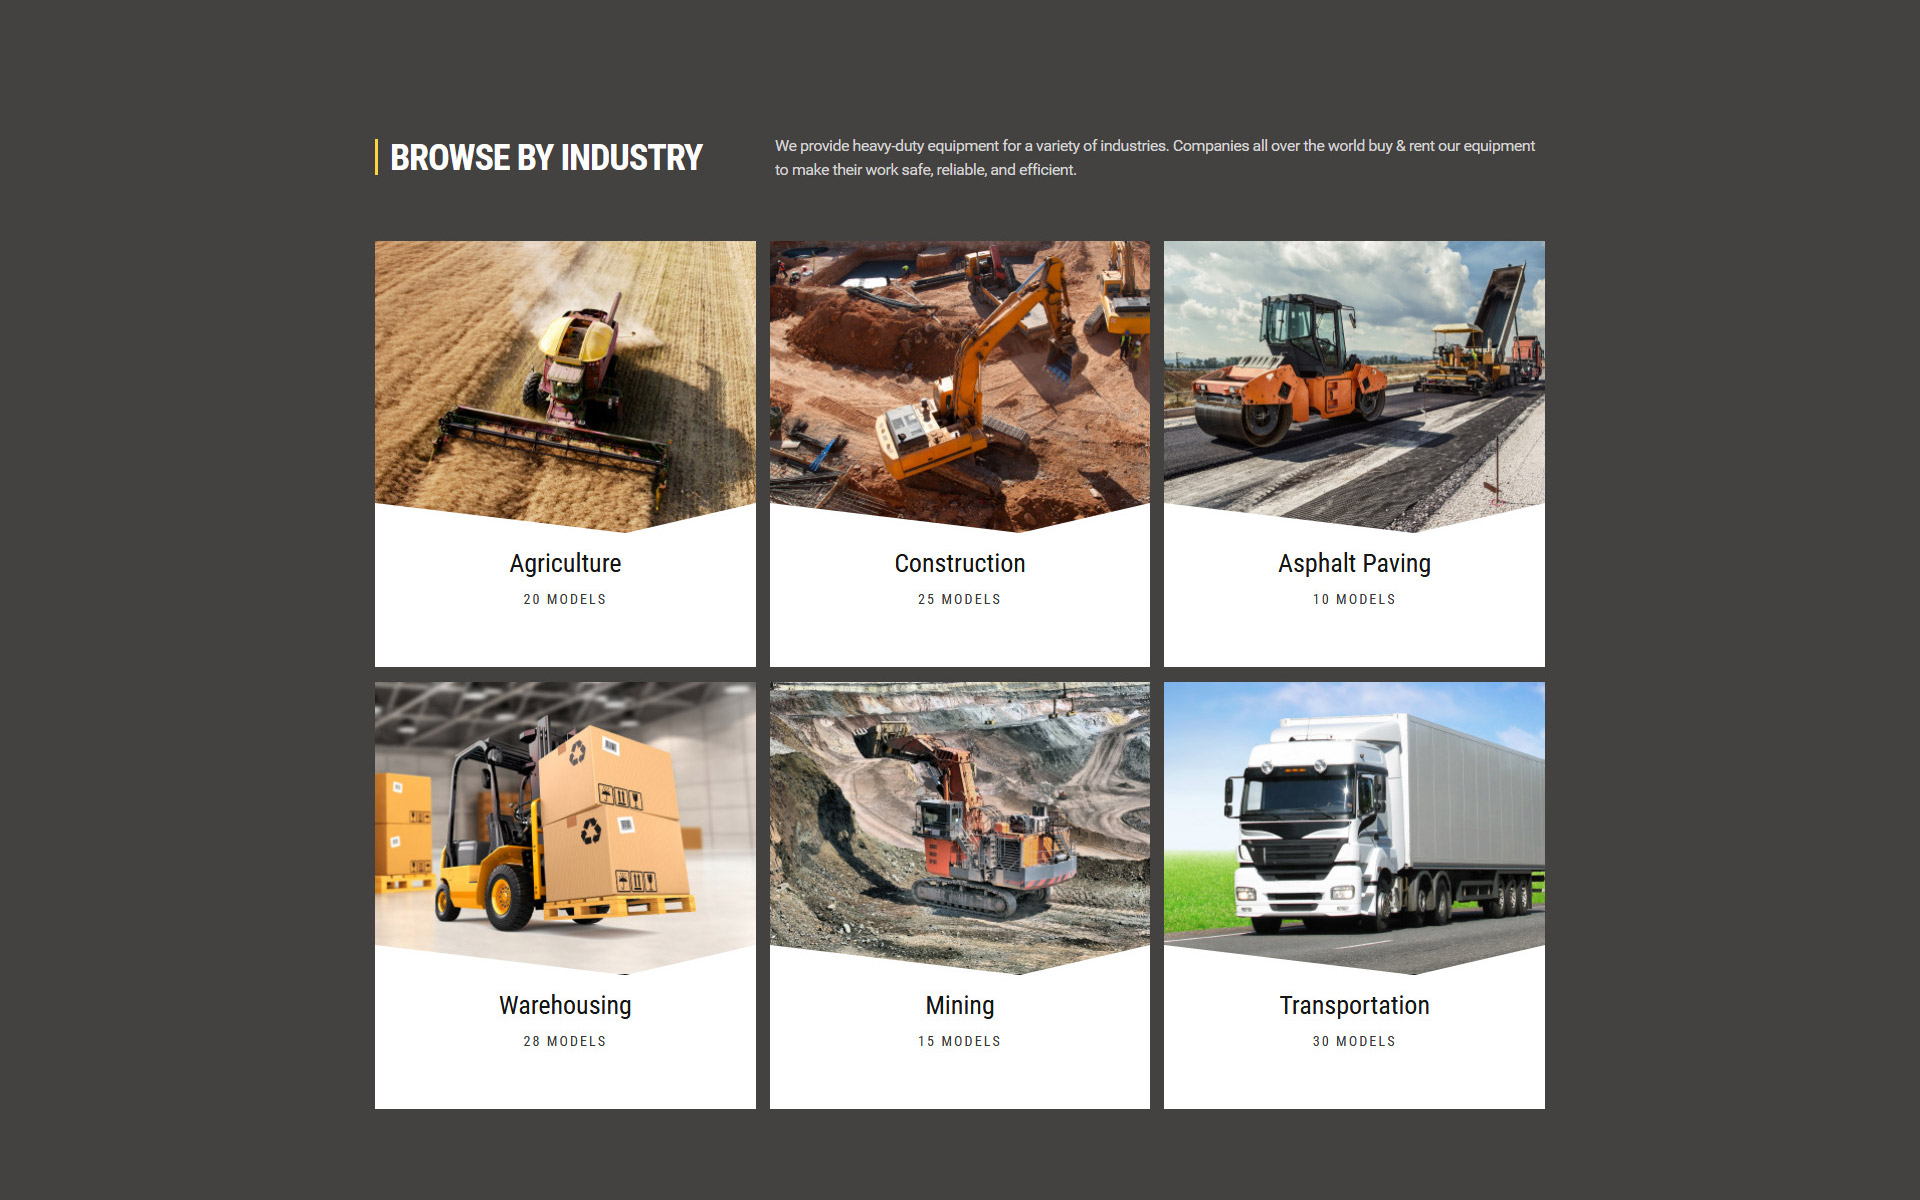 DIGGER - Tools & Equipment Multipage Classic HTML Website Template